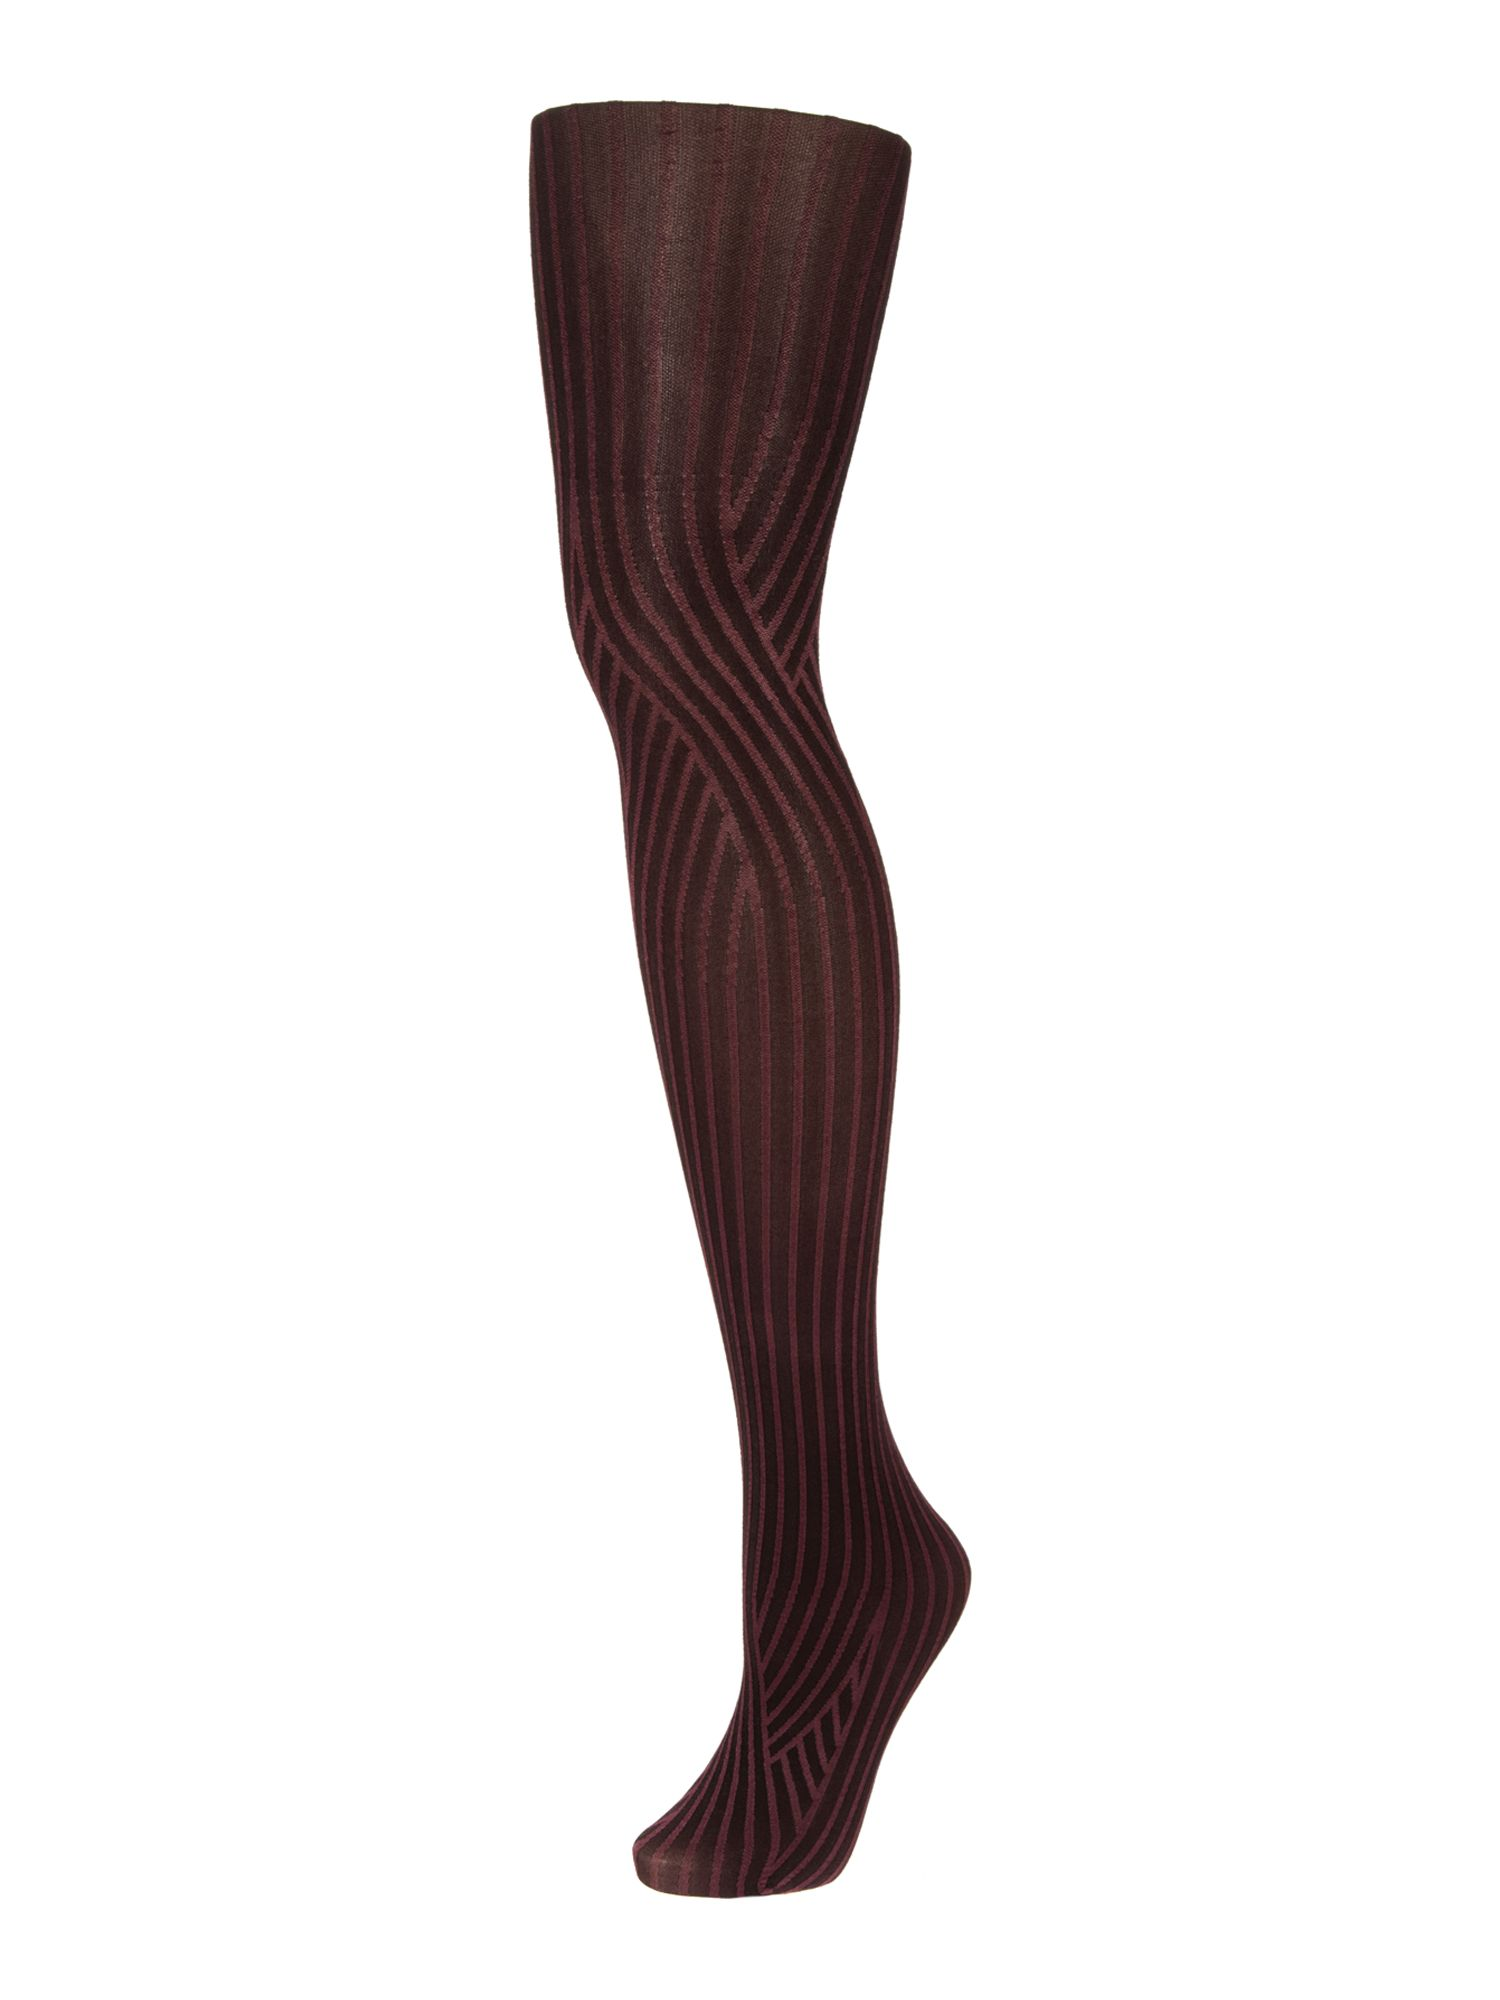 Deco curve tights